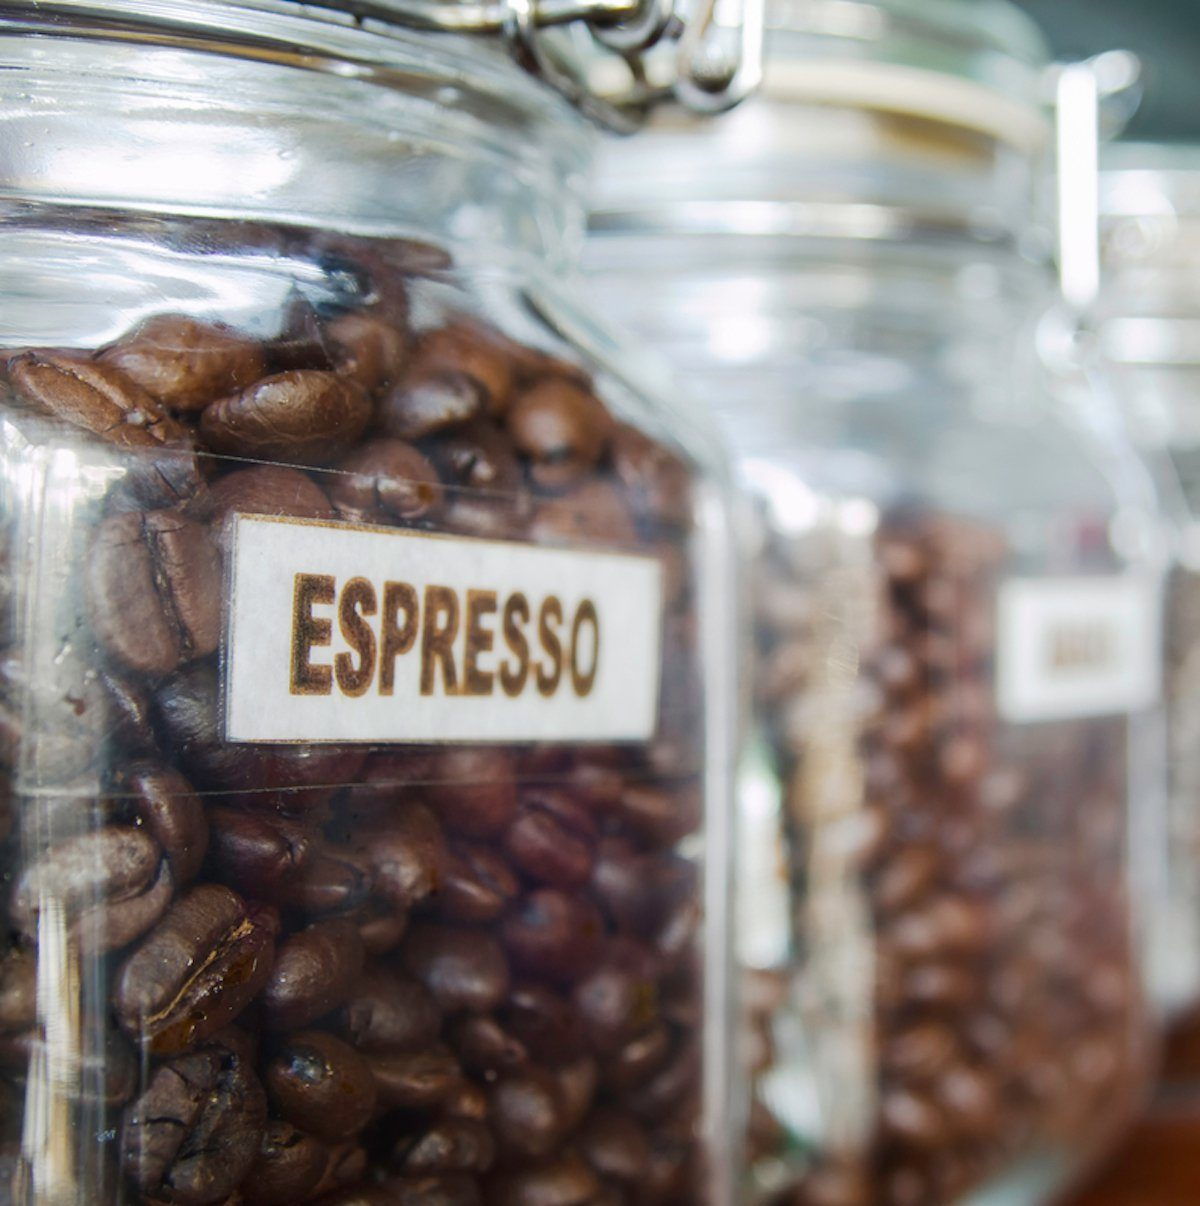 Coffee beans in the Glass bottle;